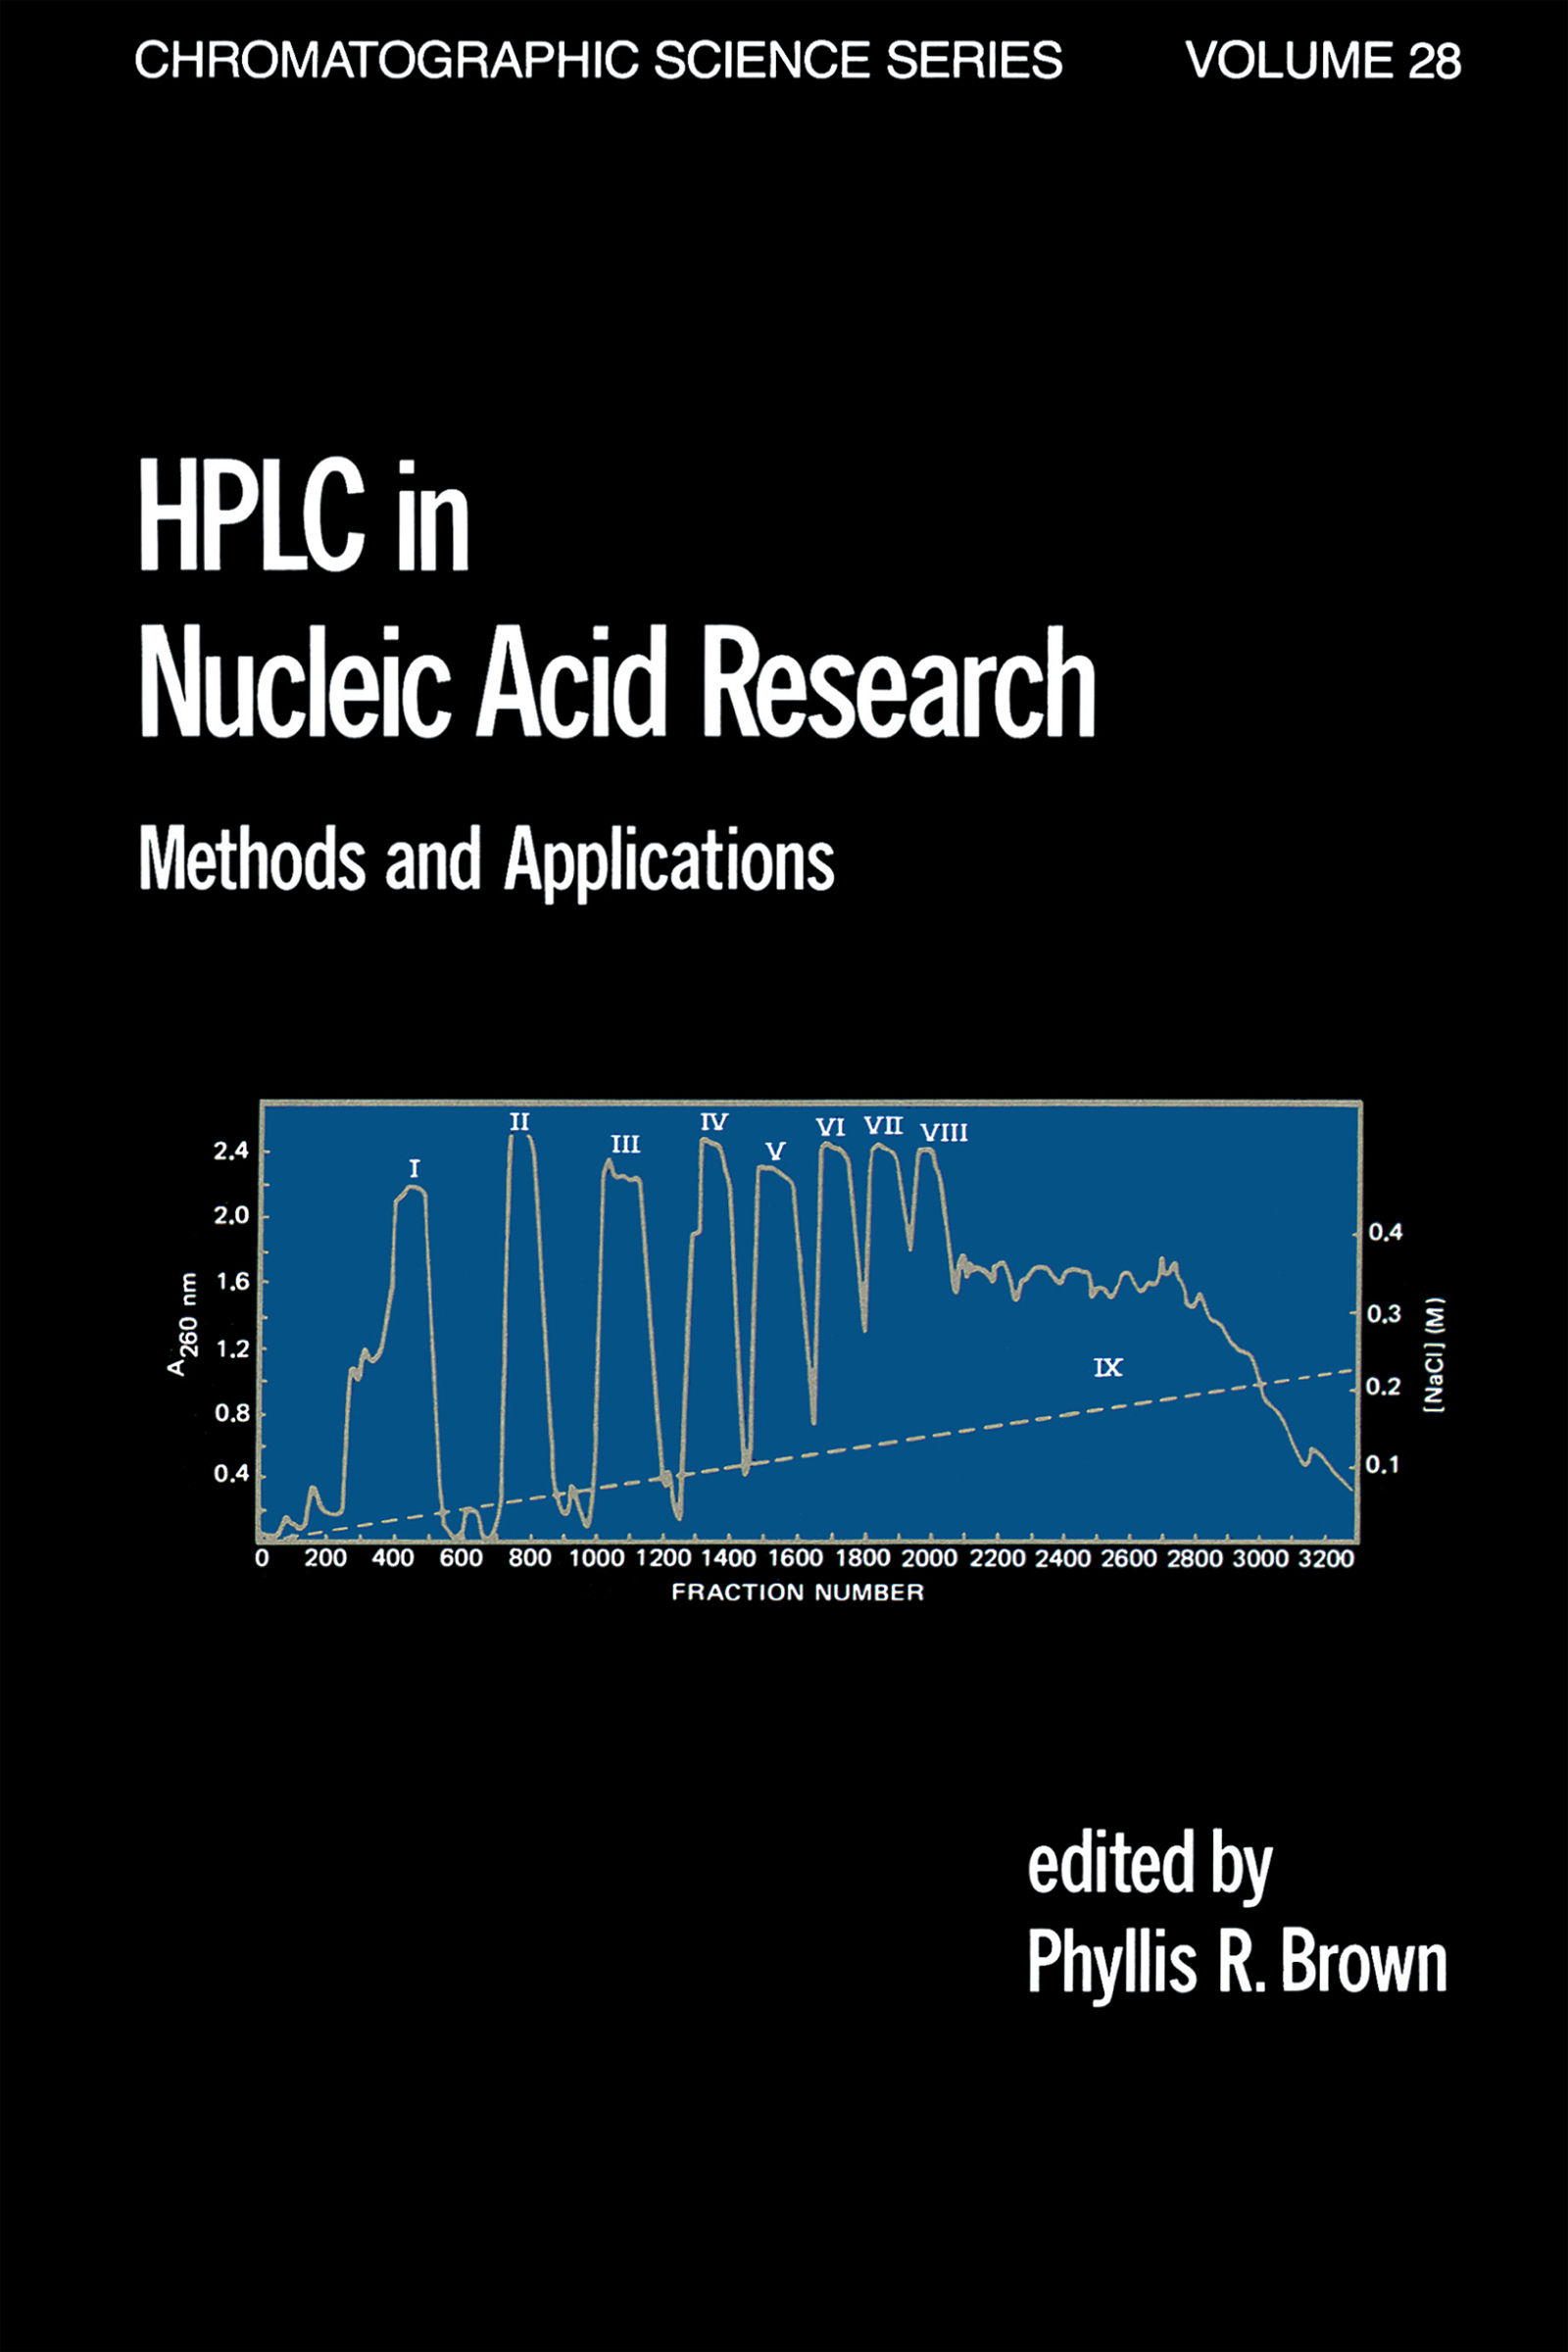 HPLC in Nucleic Acid Research